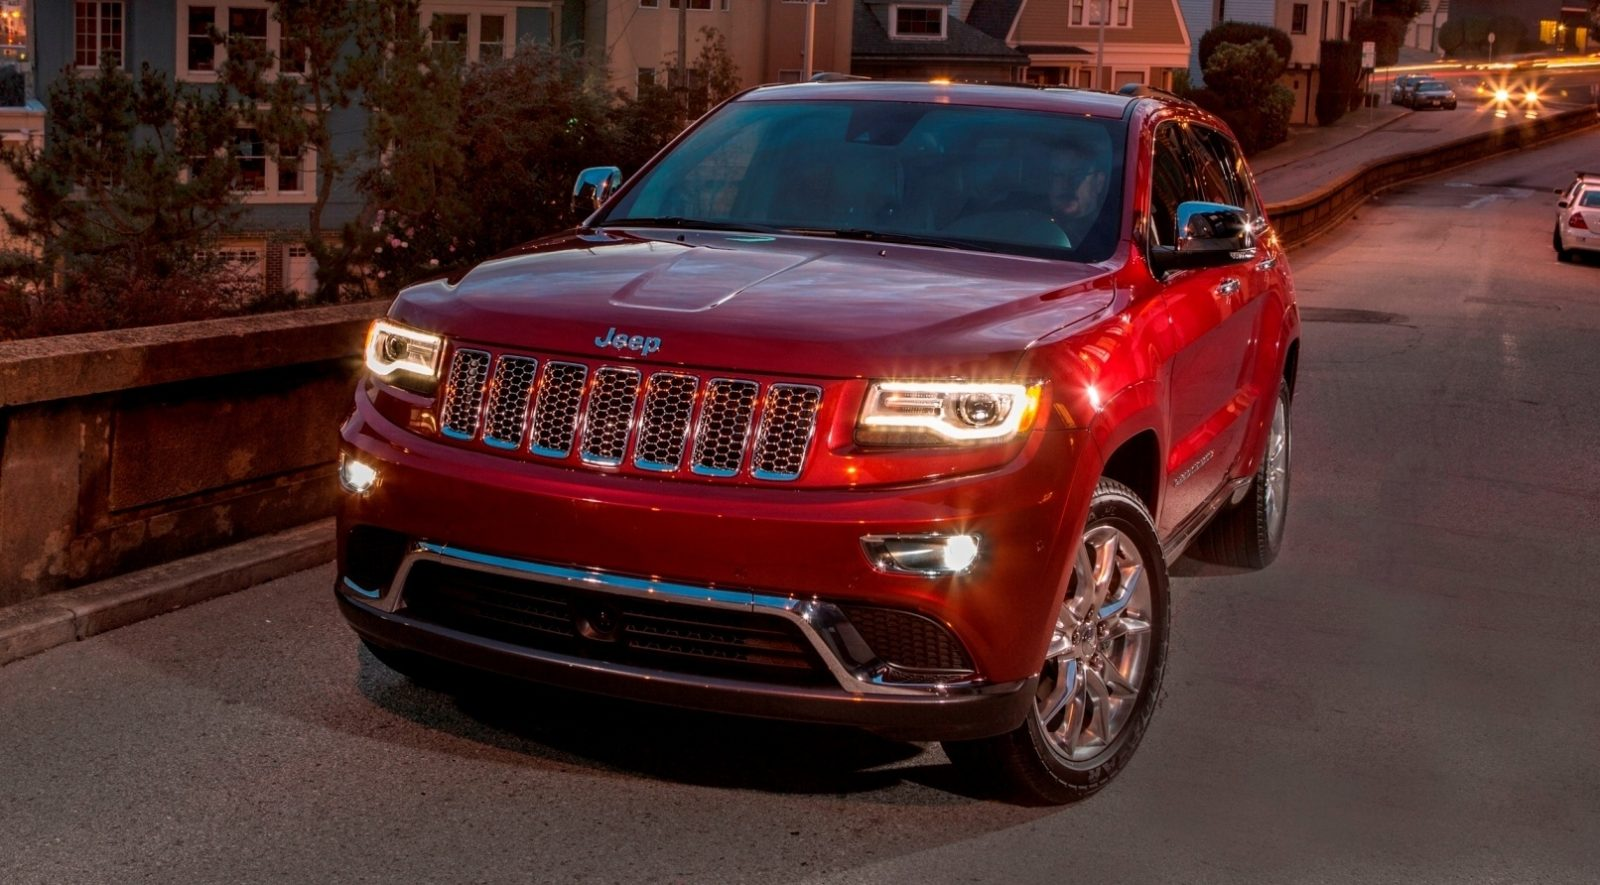 2014 jeep grand cherokee buyers guide to engines suspensions and top trims summit altitude. Black Bedroom Furniture Sets. Home Design Ideas